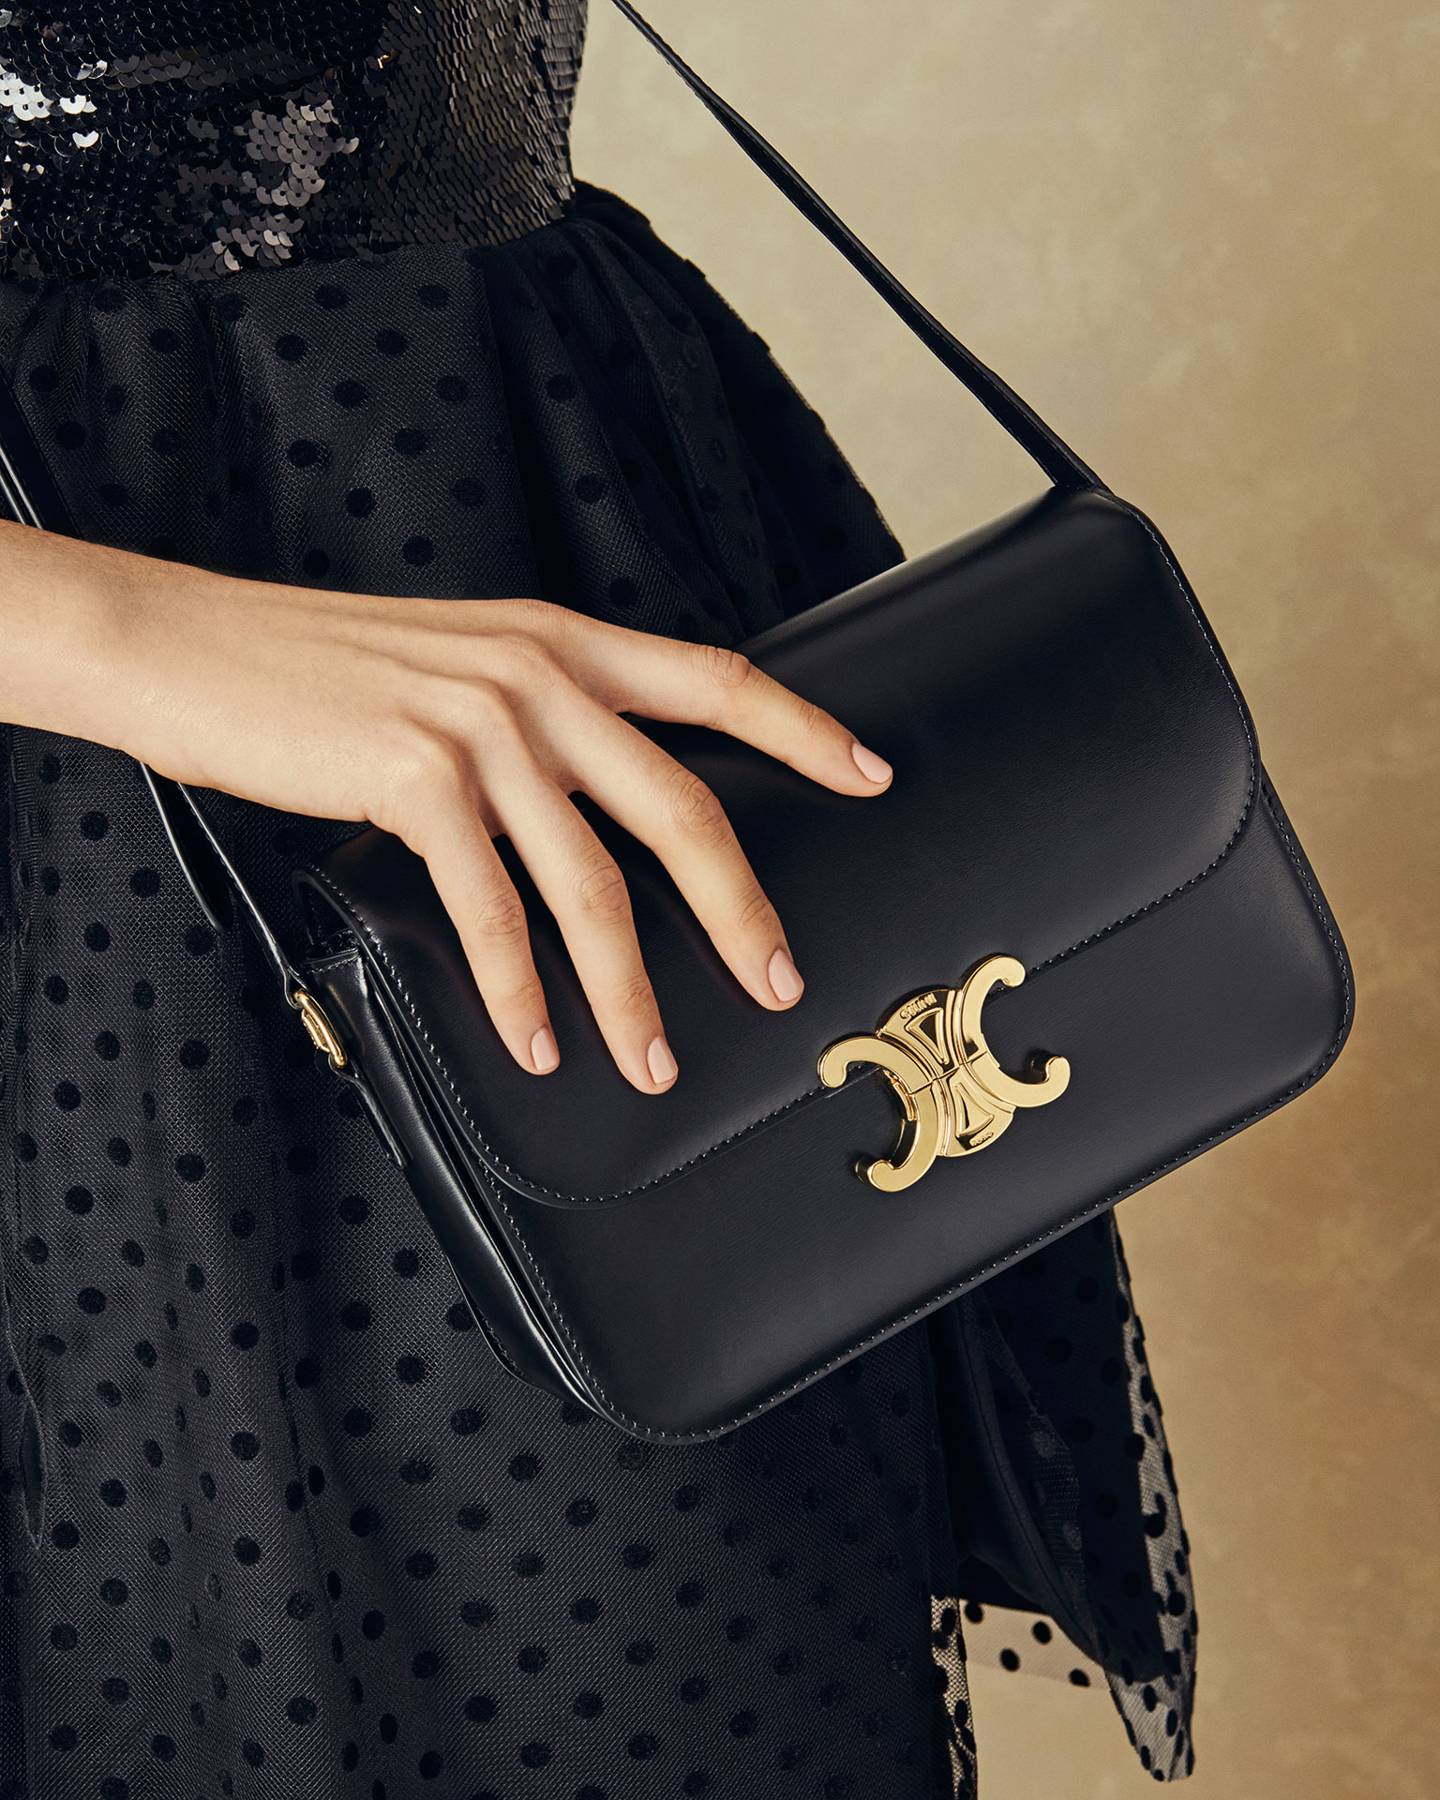 3acf52e60 The Best Black Bags To Buy Now For Spring 2019   British Vogue